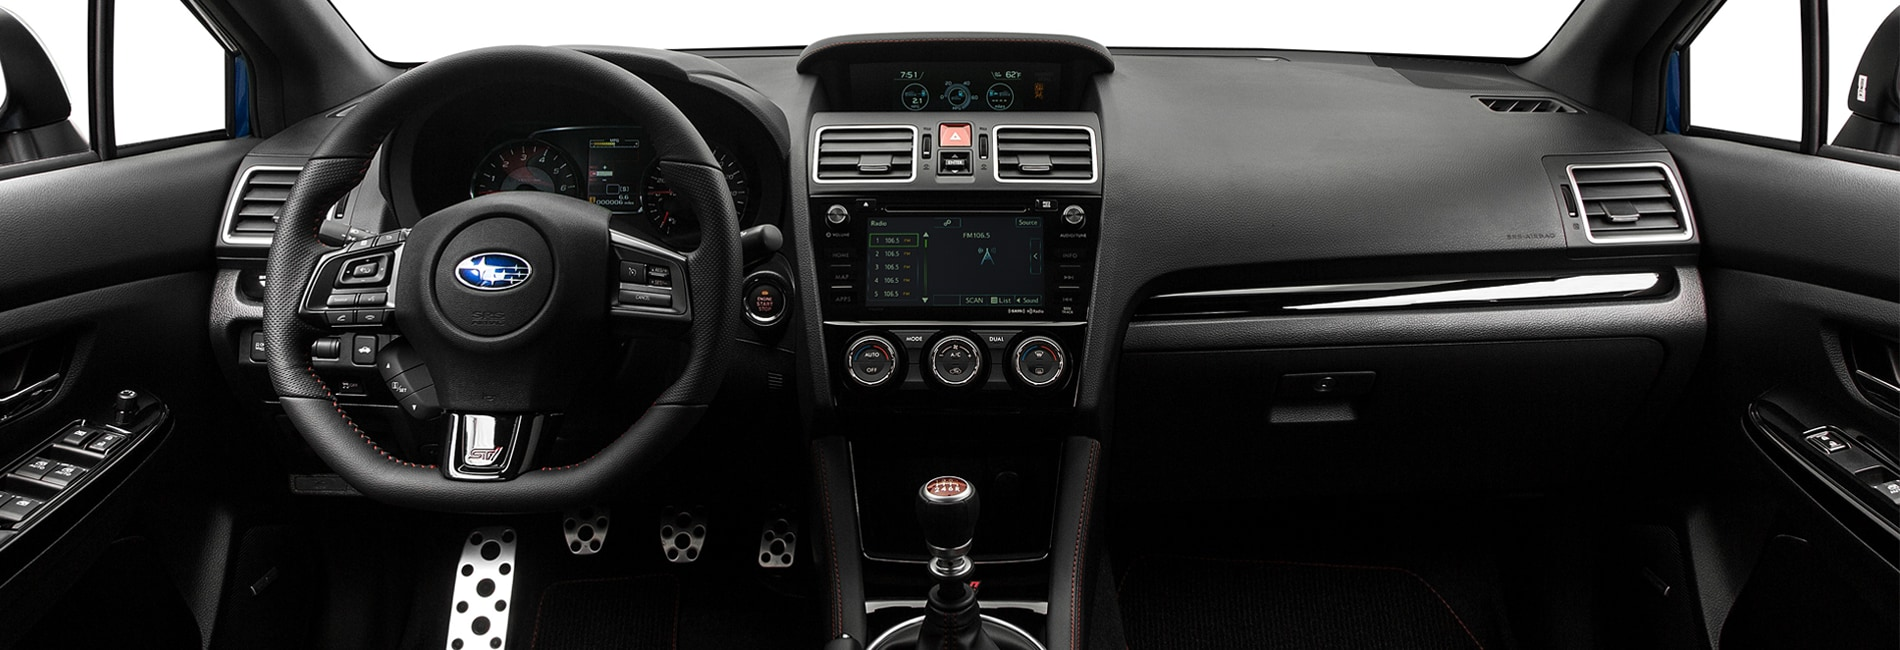 2019 Subaru WRX Interior Features